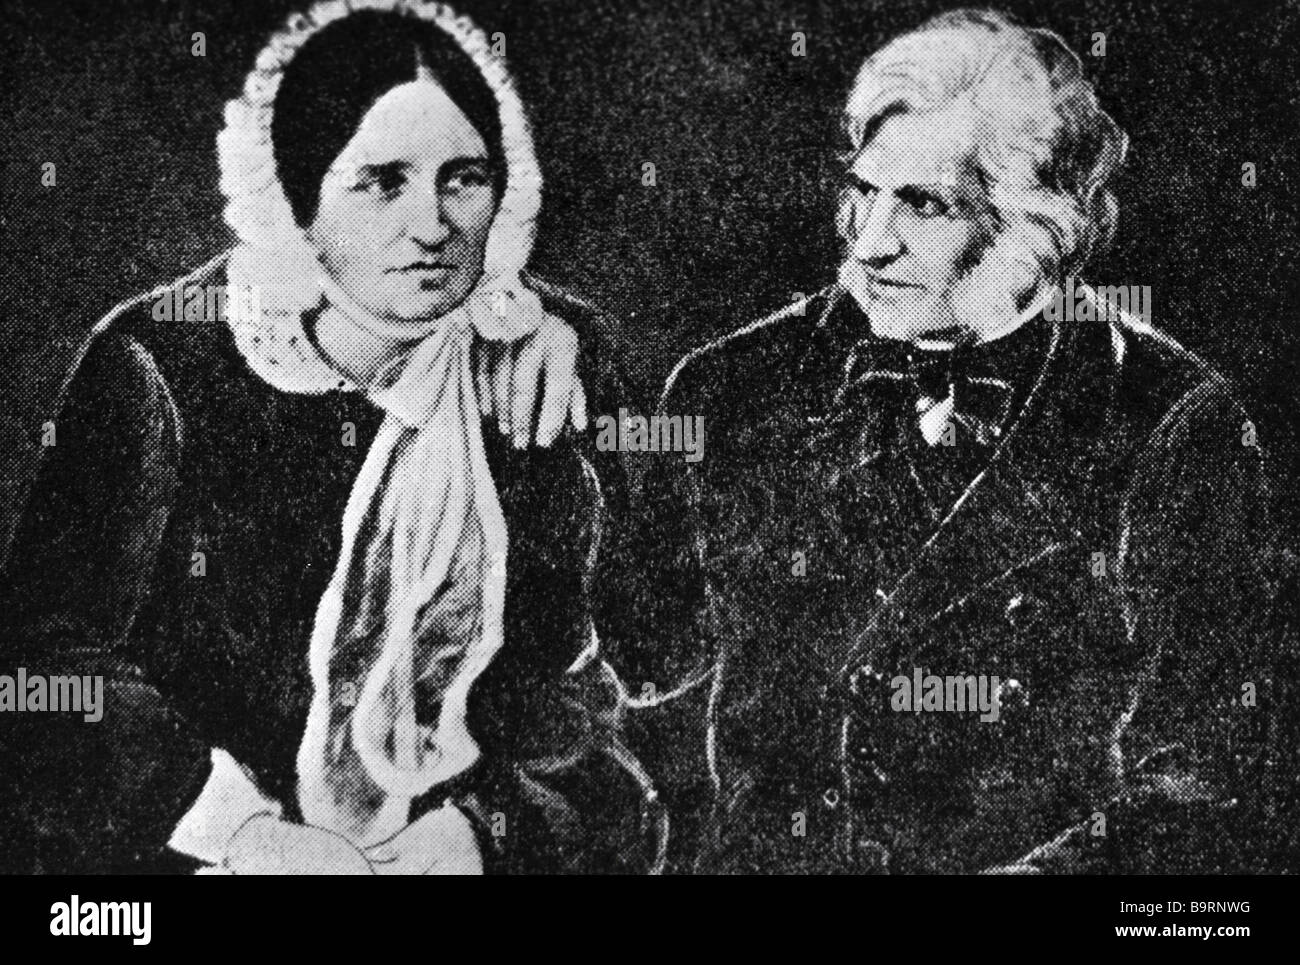 Botanist Christian Steven with his wife - Stock Image